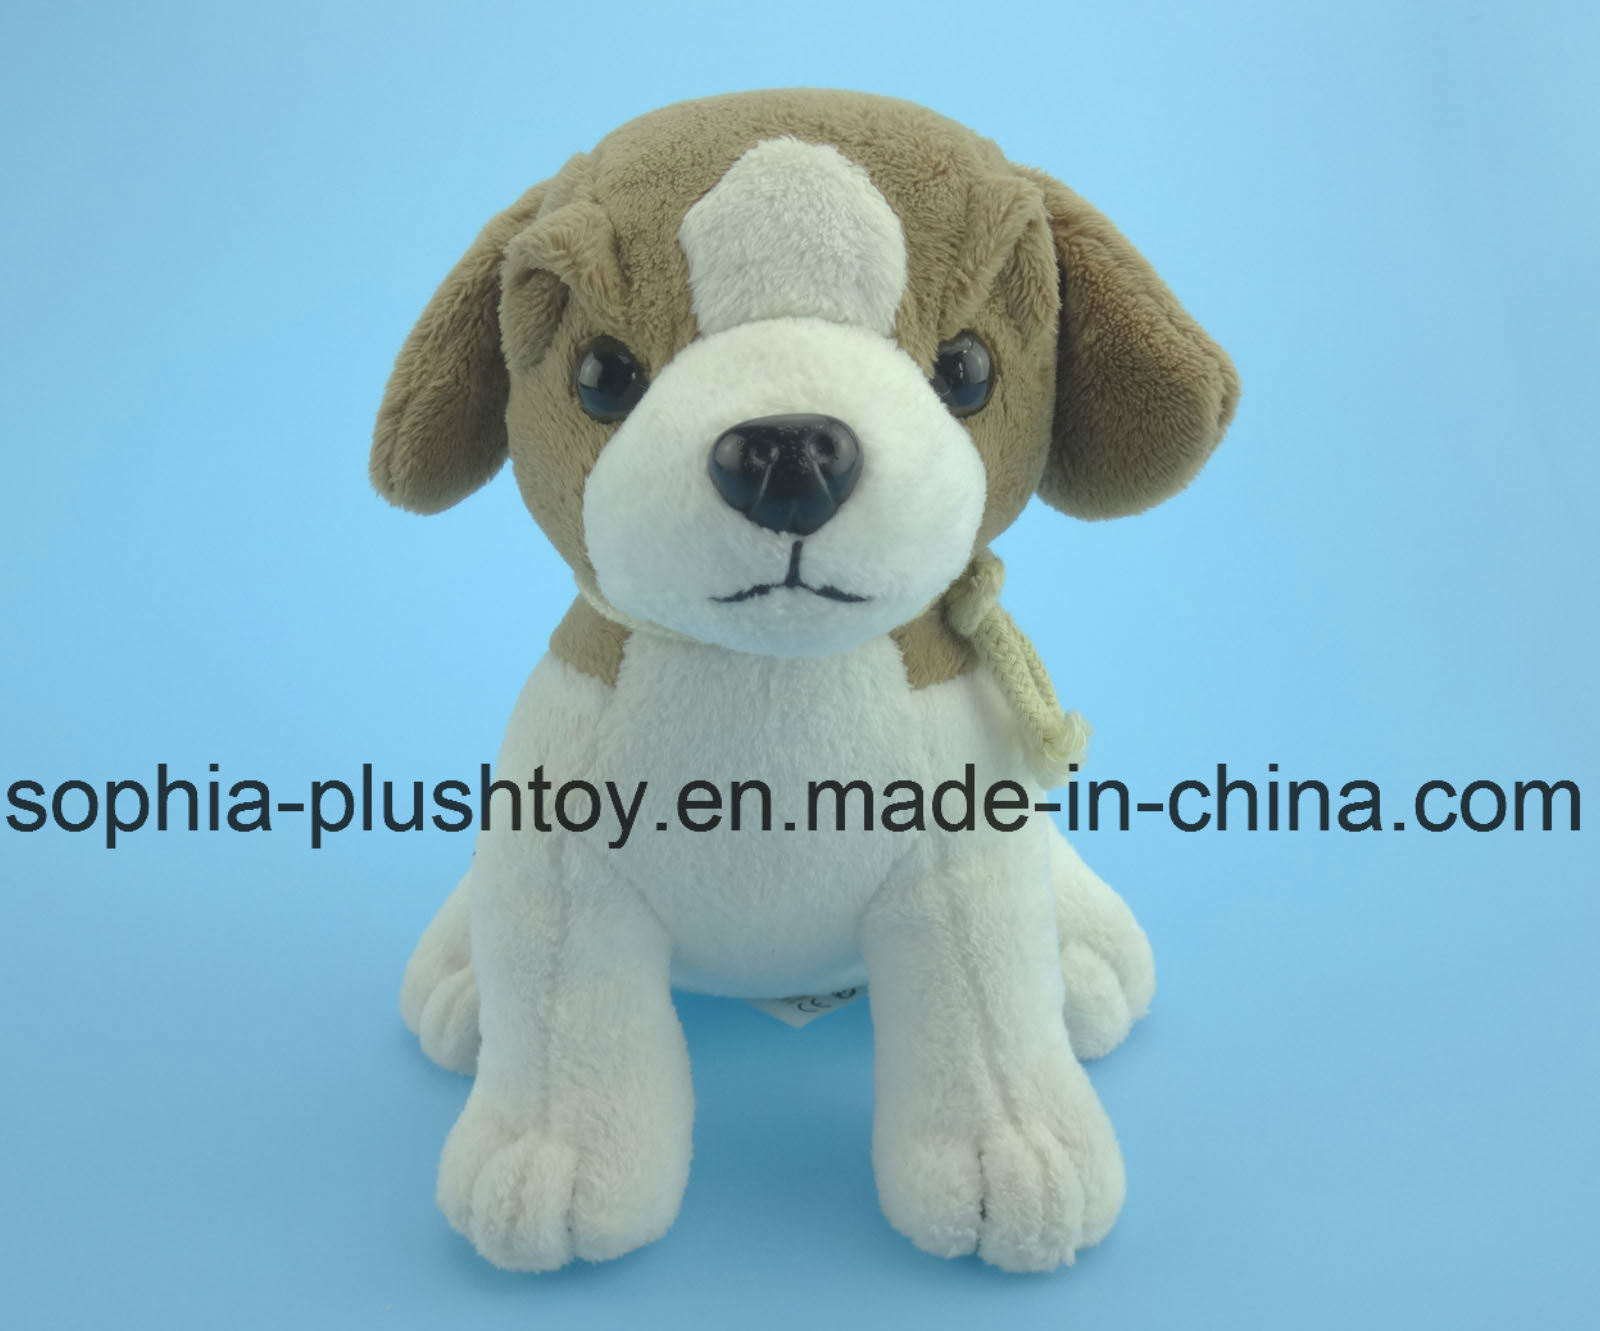 Soft Stuffed Plush Dog Toy 4 Asst.